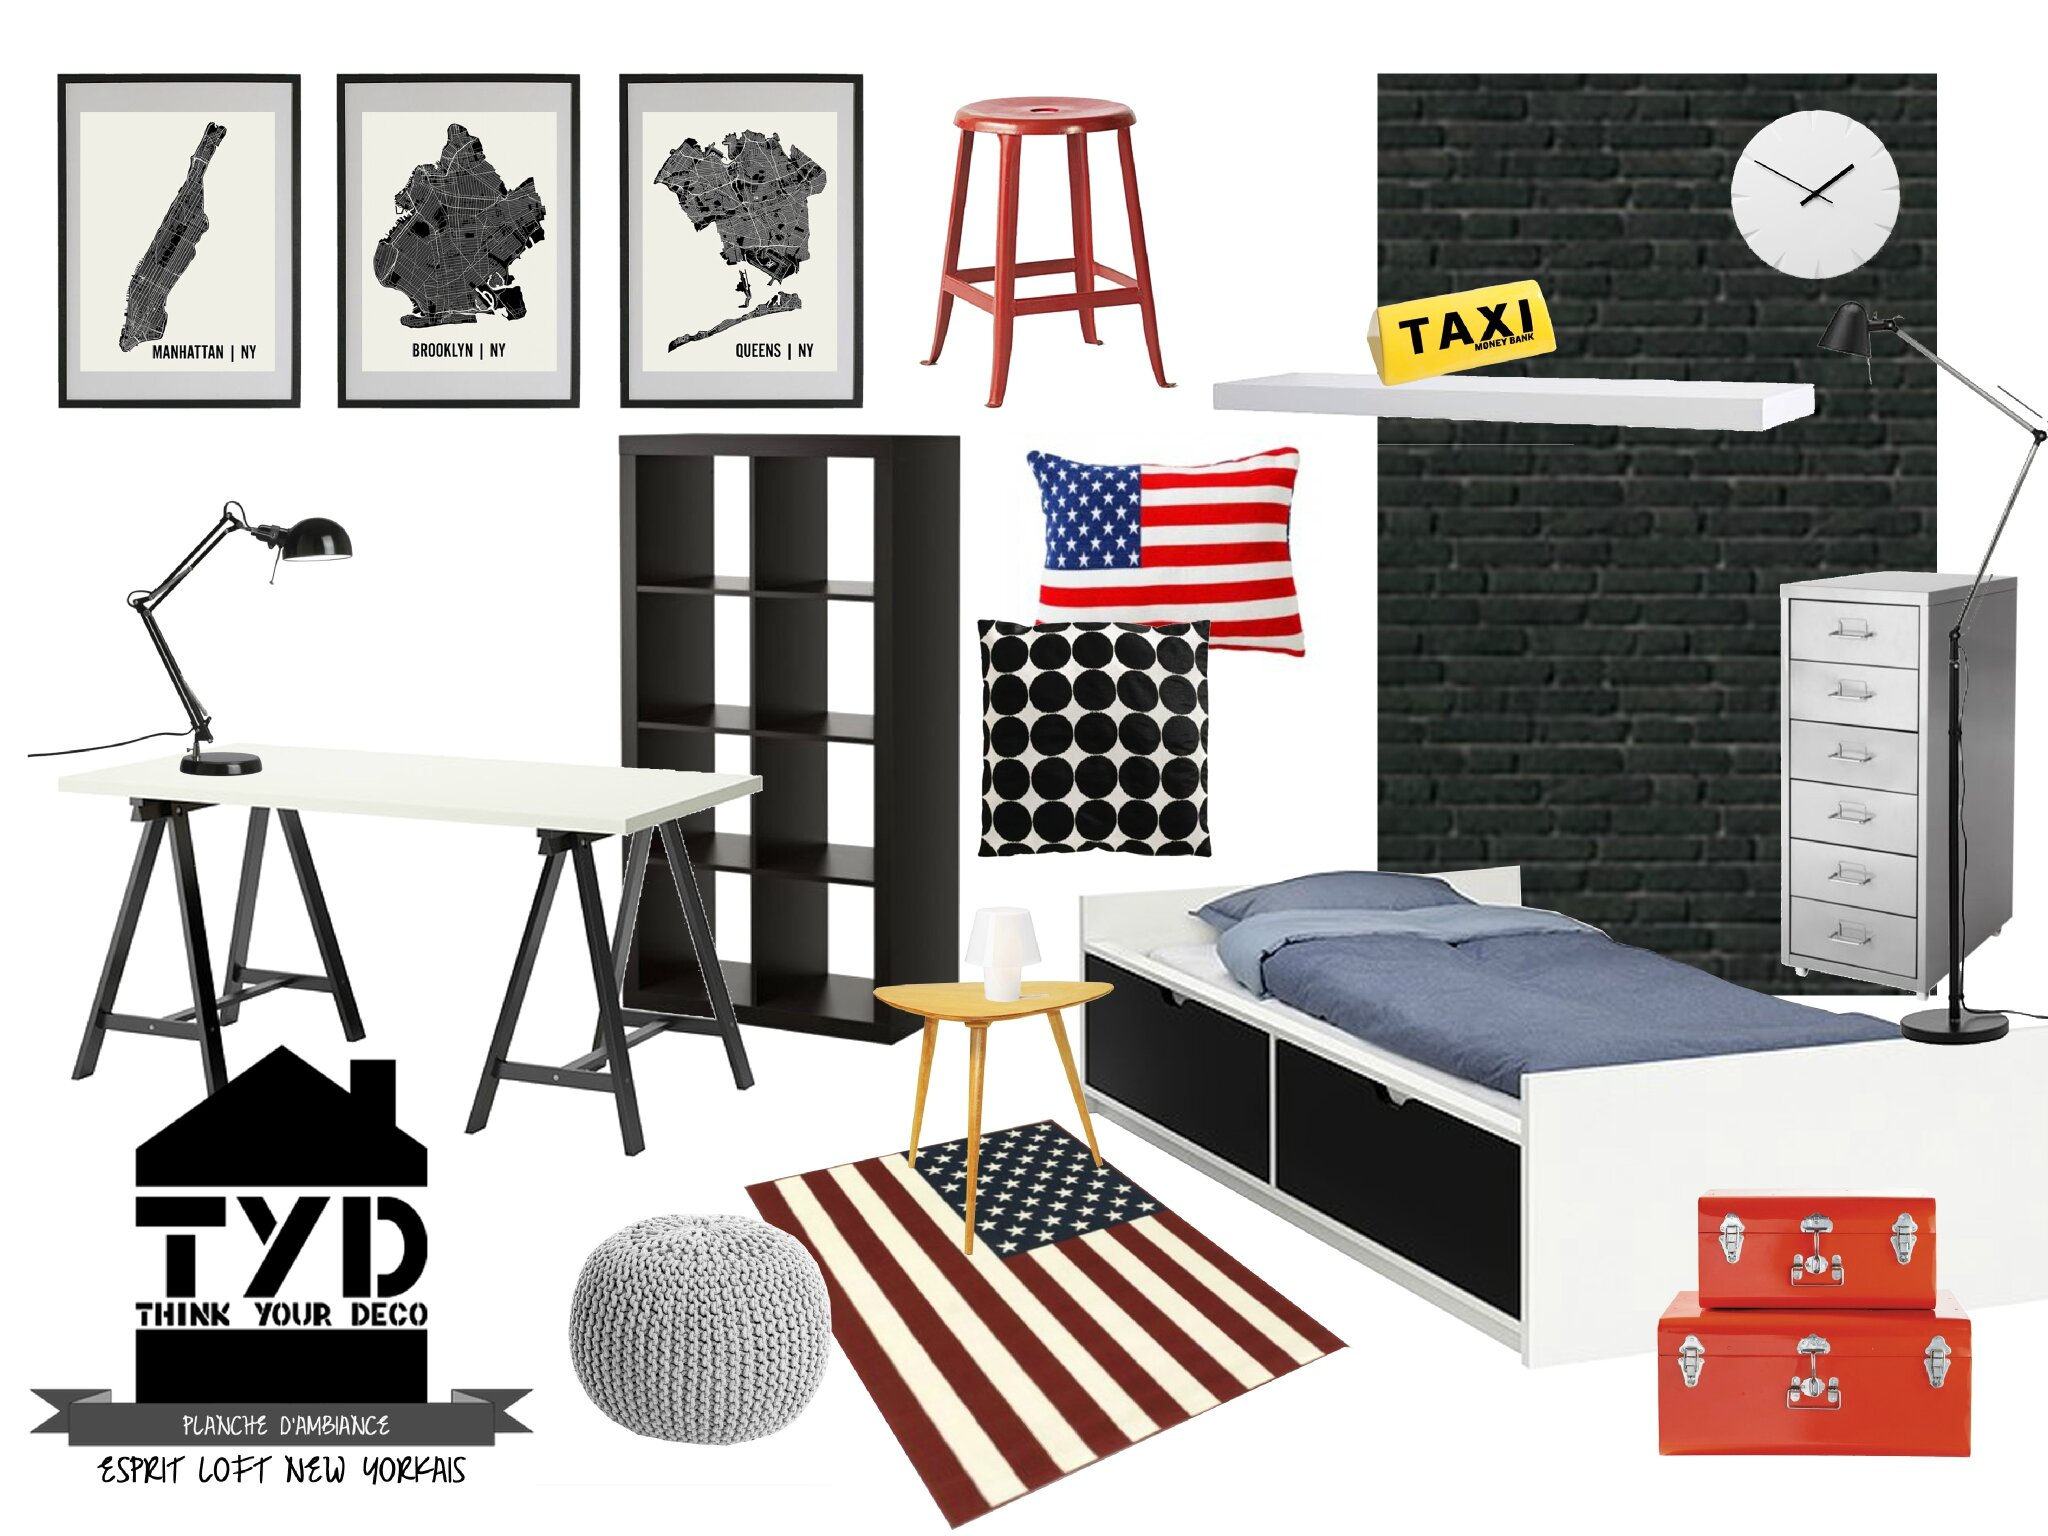 chambre d 39 ado i tyd think your deco coach d co nord. Black Bedroom Furniture Sets. Home Design Ideas